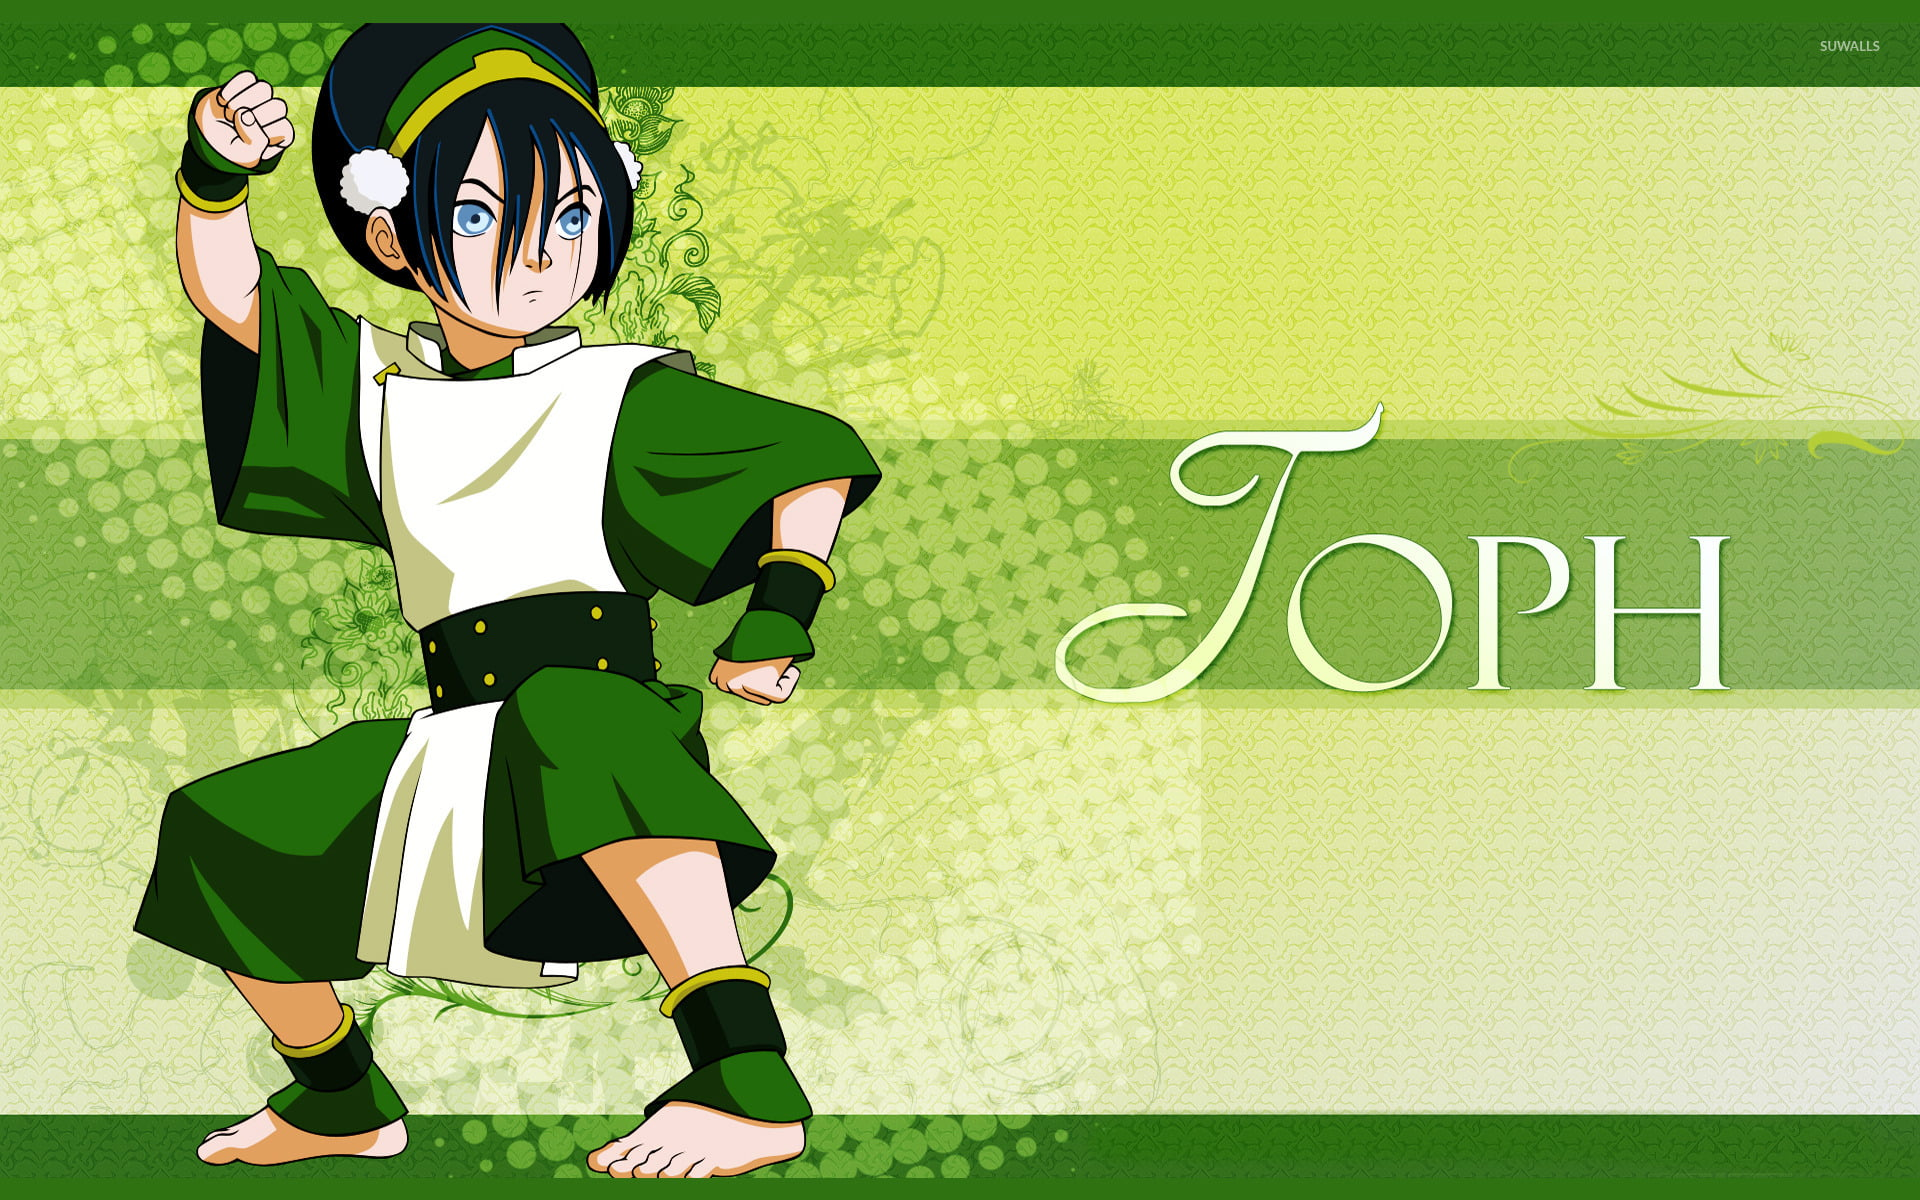 Avatar The Last Airbender's Toph Beifong